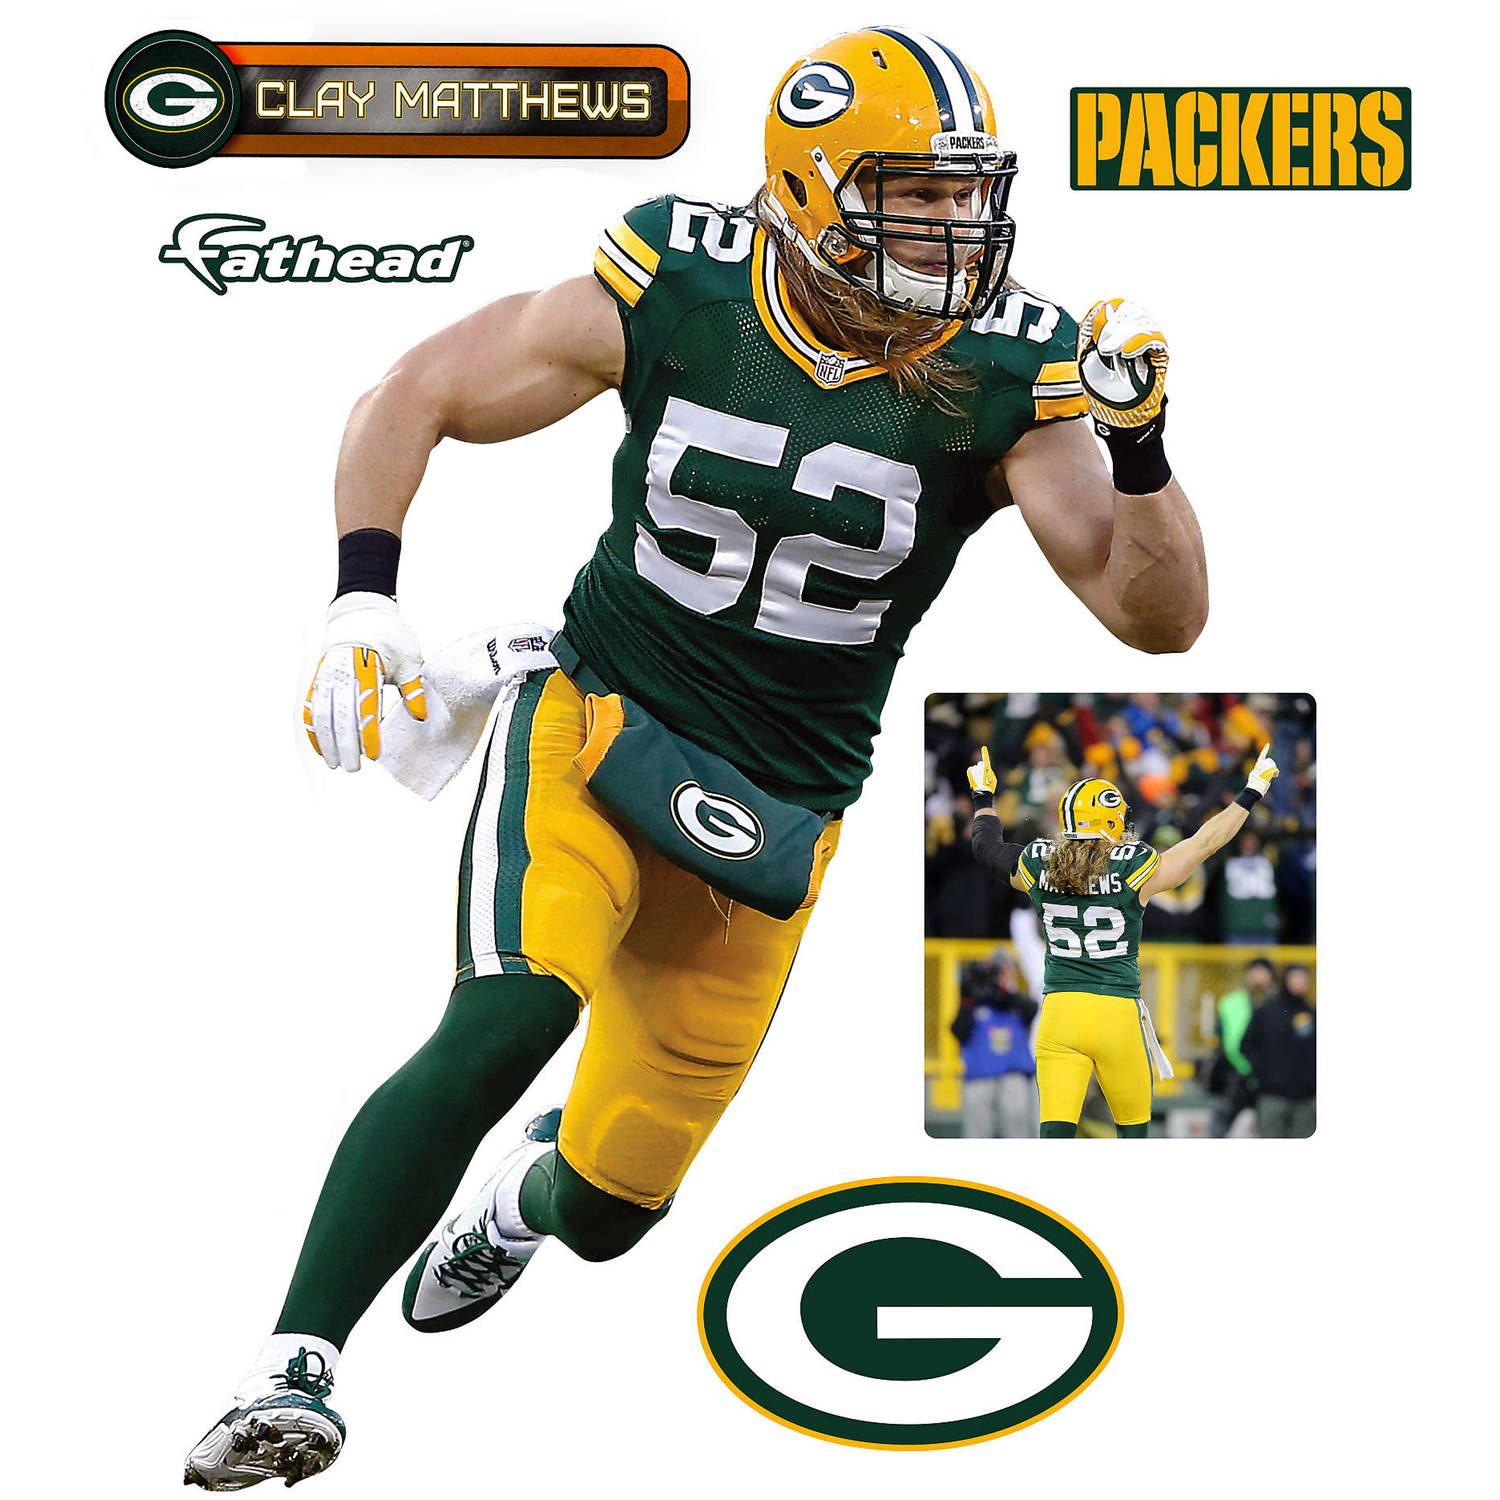 Fathead NFL Clay Matthews 2015 Teammate Player Retail 6-Pack